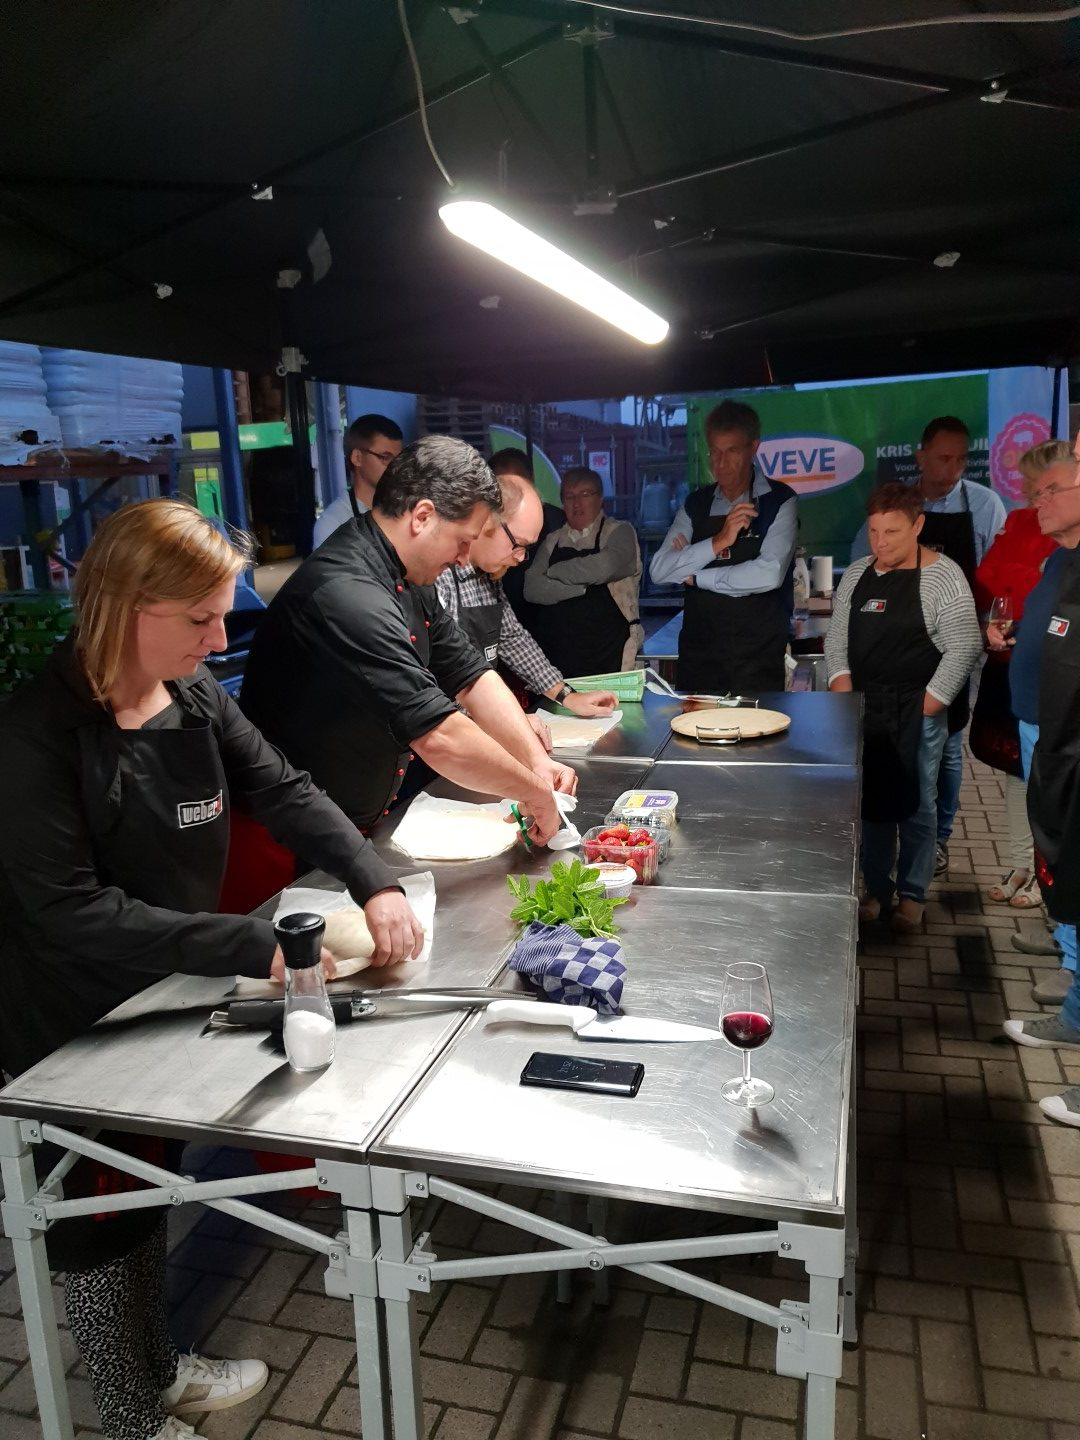 bbq-workshop-12juni-15-e1533205201864